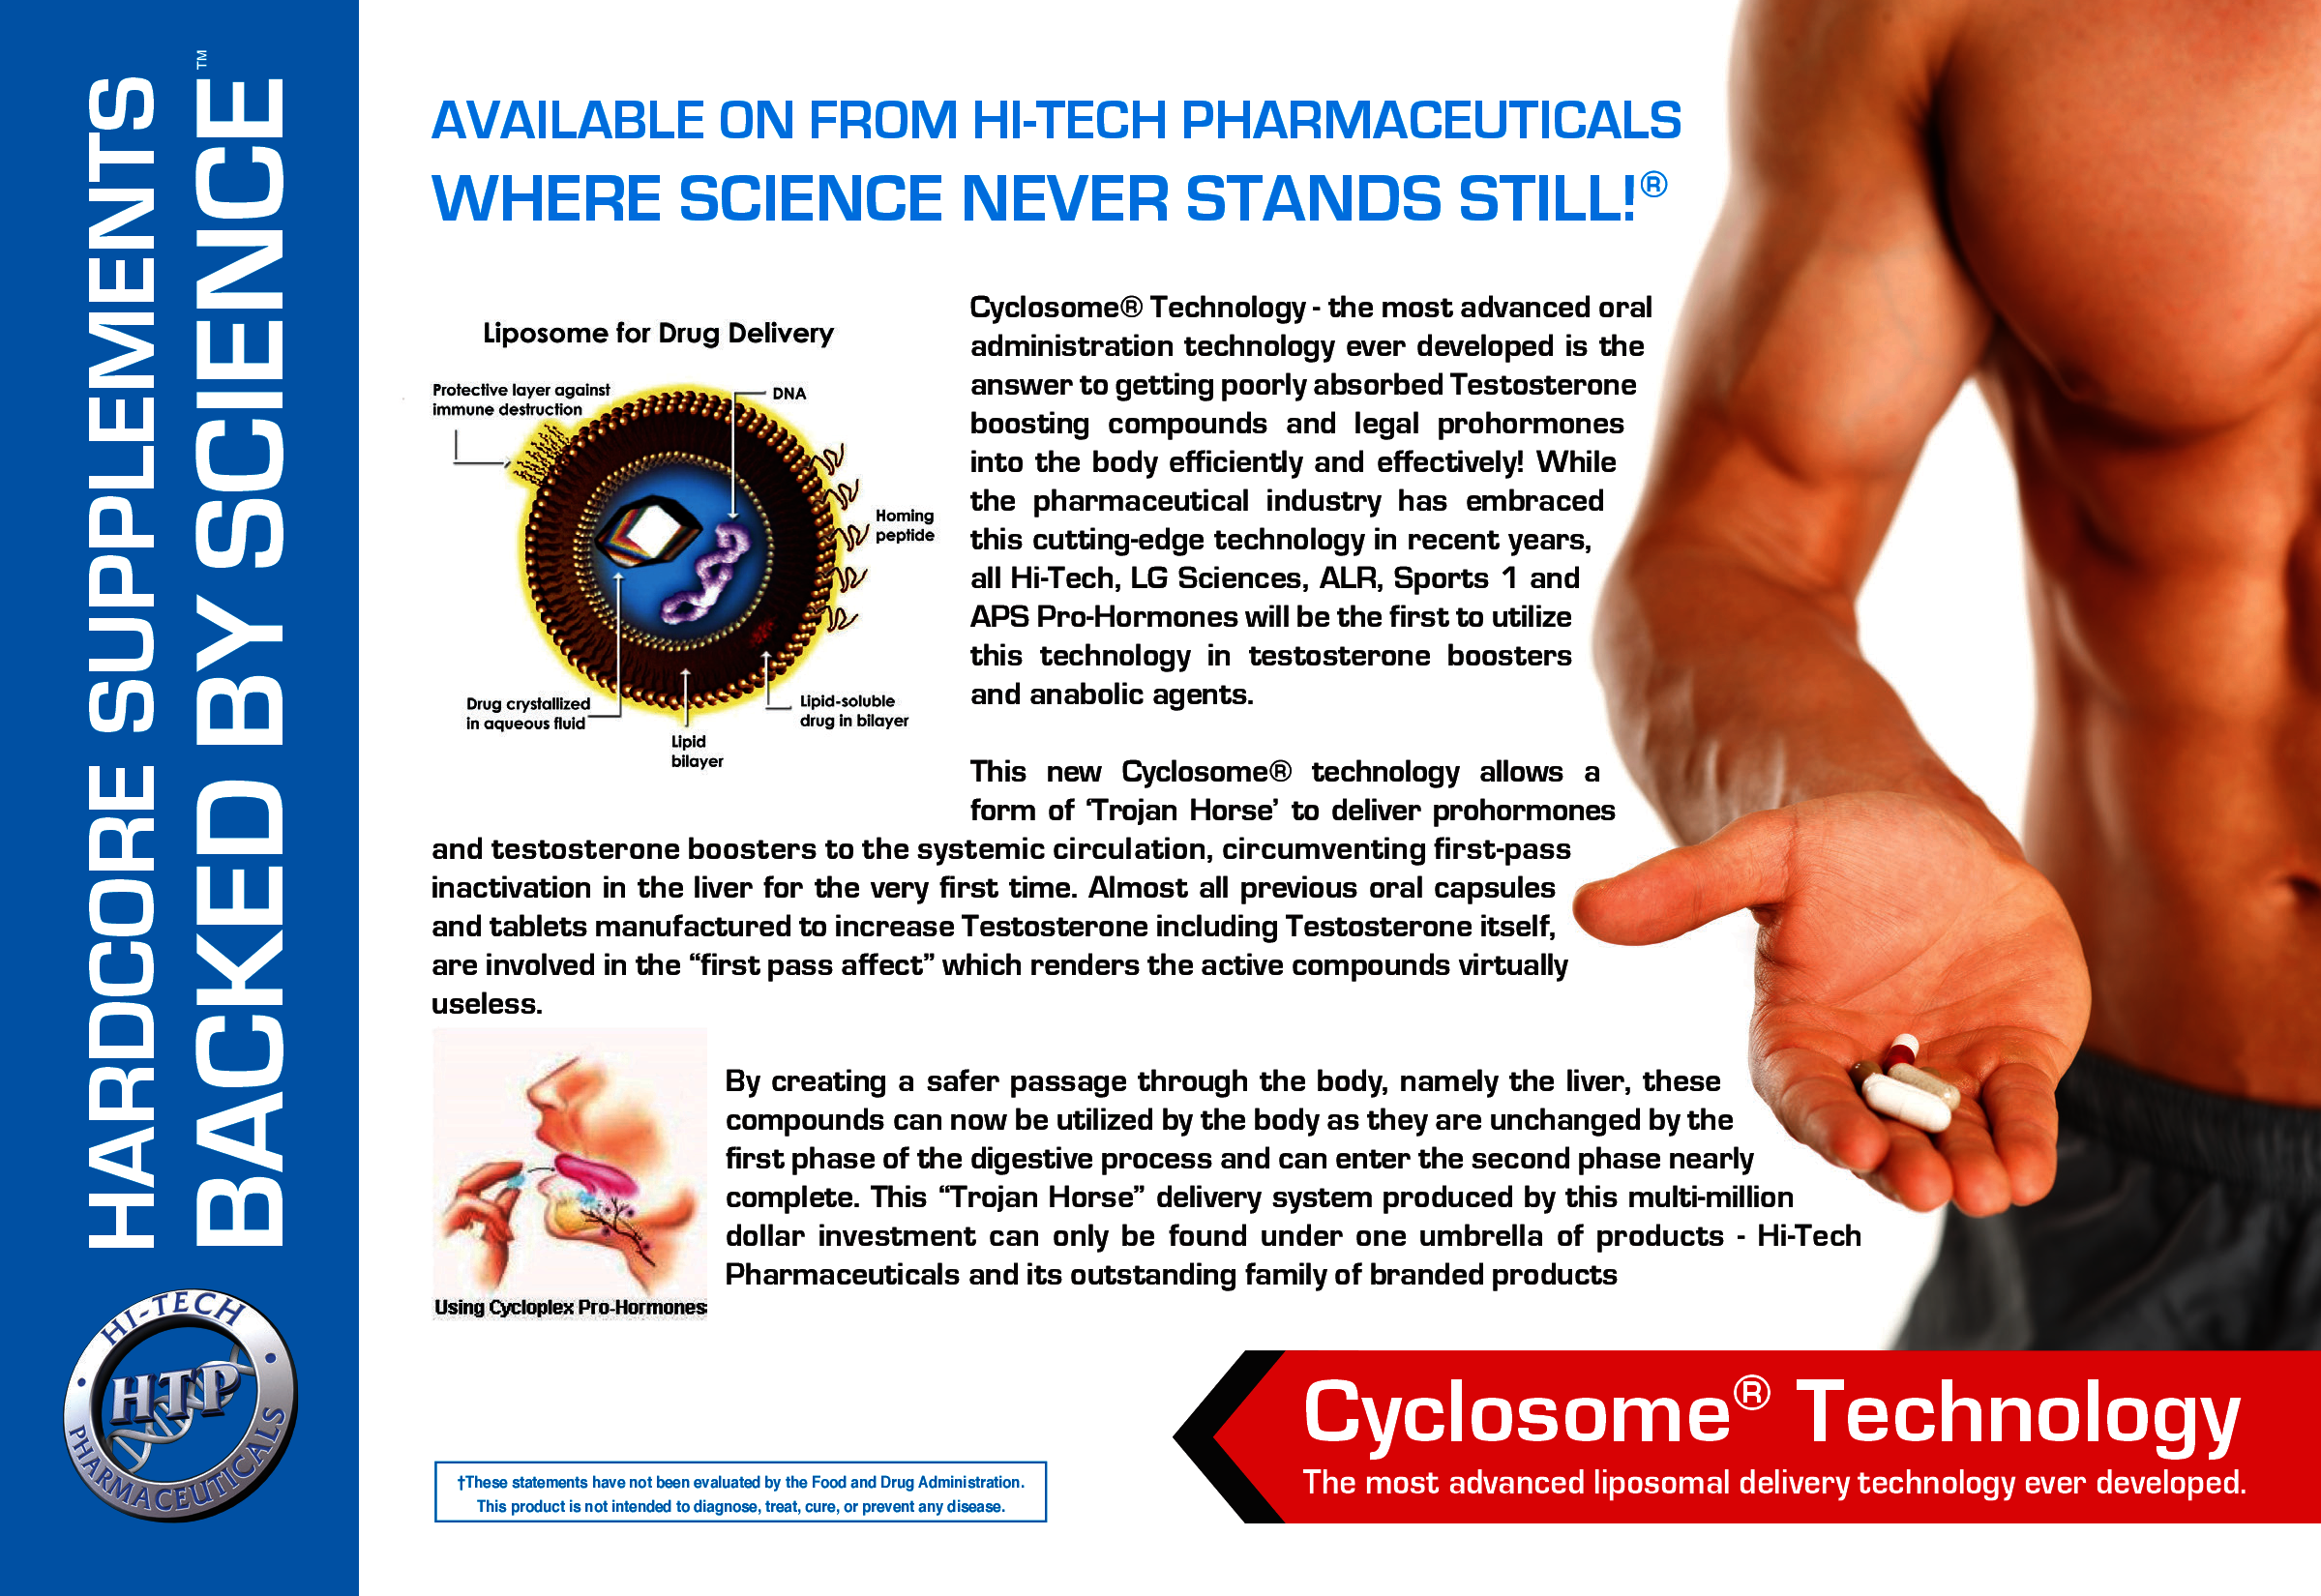 Hi-Tech Pharmaceuticals 1-Testosterone